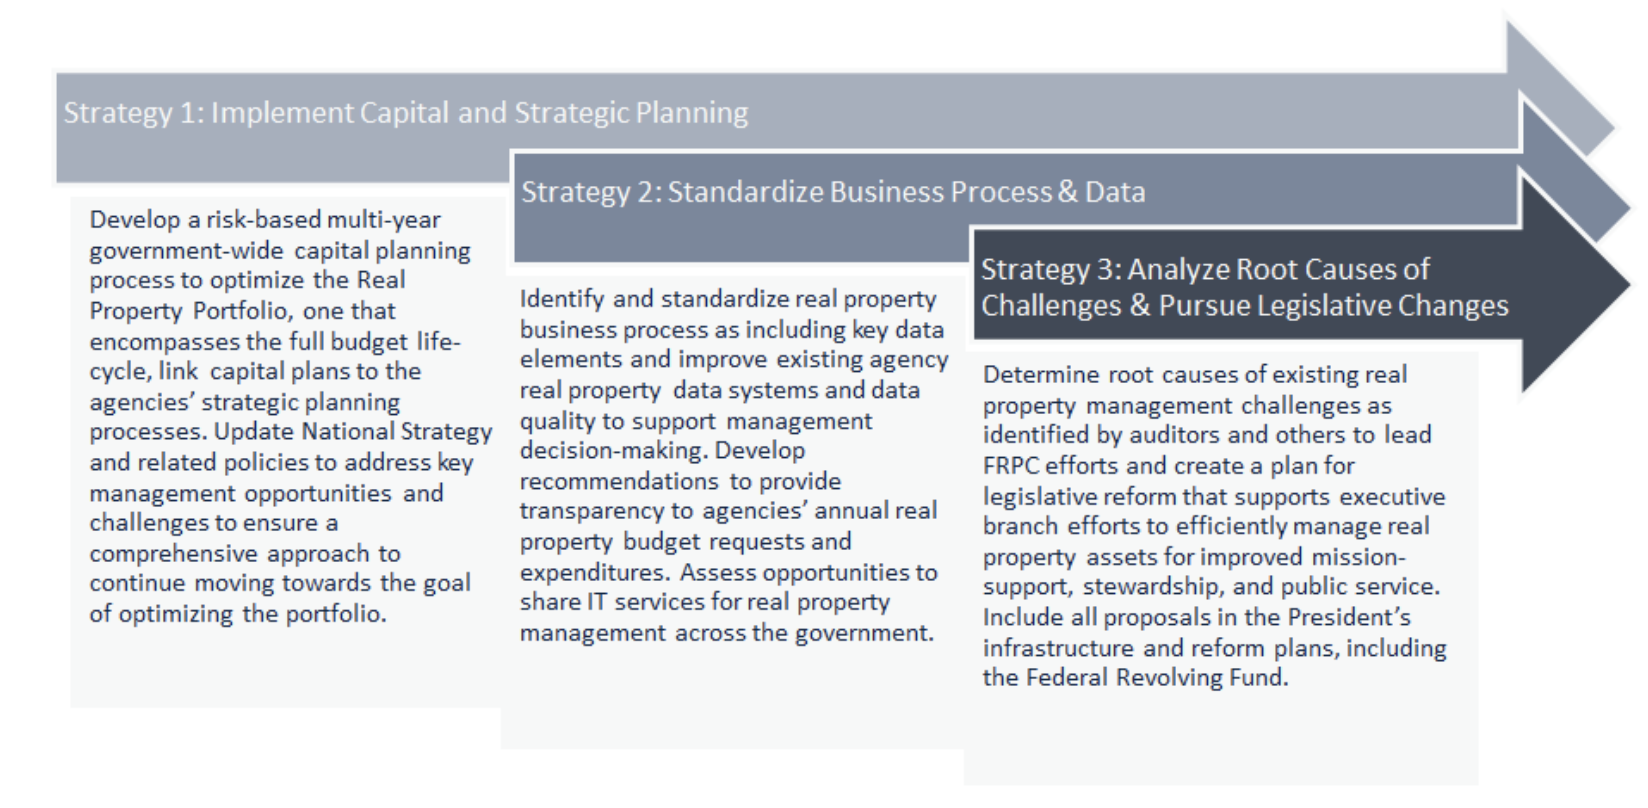 The Federal Real Property Council strategic approach features the following 3 strategies. These strategies build on one another. Strategy 1: Implement Capital and Strategic Planning: Develop a risk-based multi-year government-wide capital planning process to optimize the Real Property Portfolio, one that encompasses the full budget life-cycle, link  capital plans to the agencies' strategic planning processes. Update National Strategy and related policies to address key management opportunities and challenges to ensure a comprehensive approach to continue moving towards the goal of optimizing the portfolio. Strategy 3: Analyze Root Causes of Challenges & Pursue Legislative Changes: Determine root causes of existing real property management challenges as identified by auditors and others to lead FRPC efforts and create a plan for legislative reform that supports executive branch efforts to efficiently manage real property assets for improved mission-support, stewardship, and public service. Include all proposals in the President's infrastructure and reform plans, including the Federal Revolving Fund.